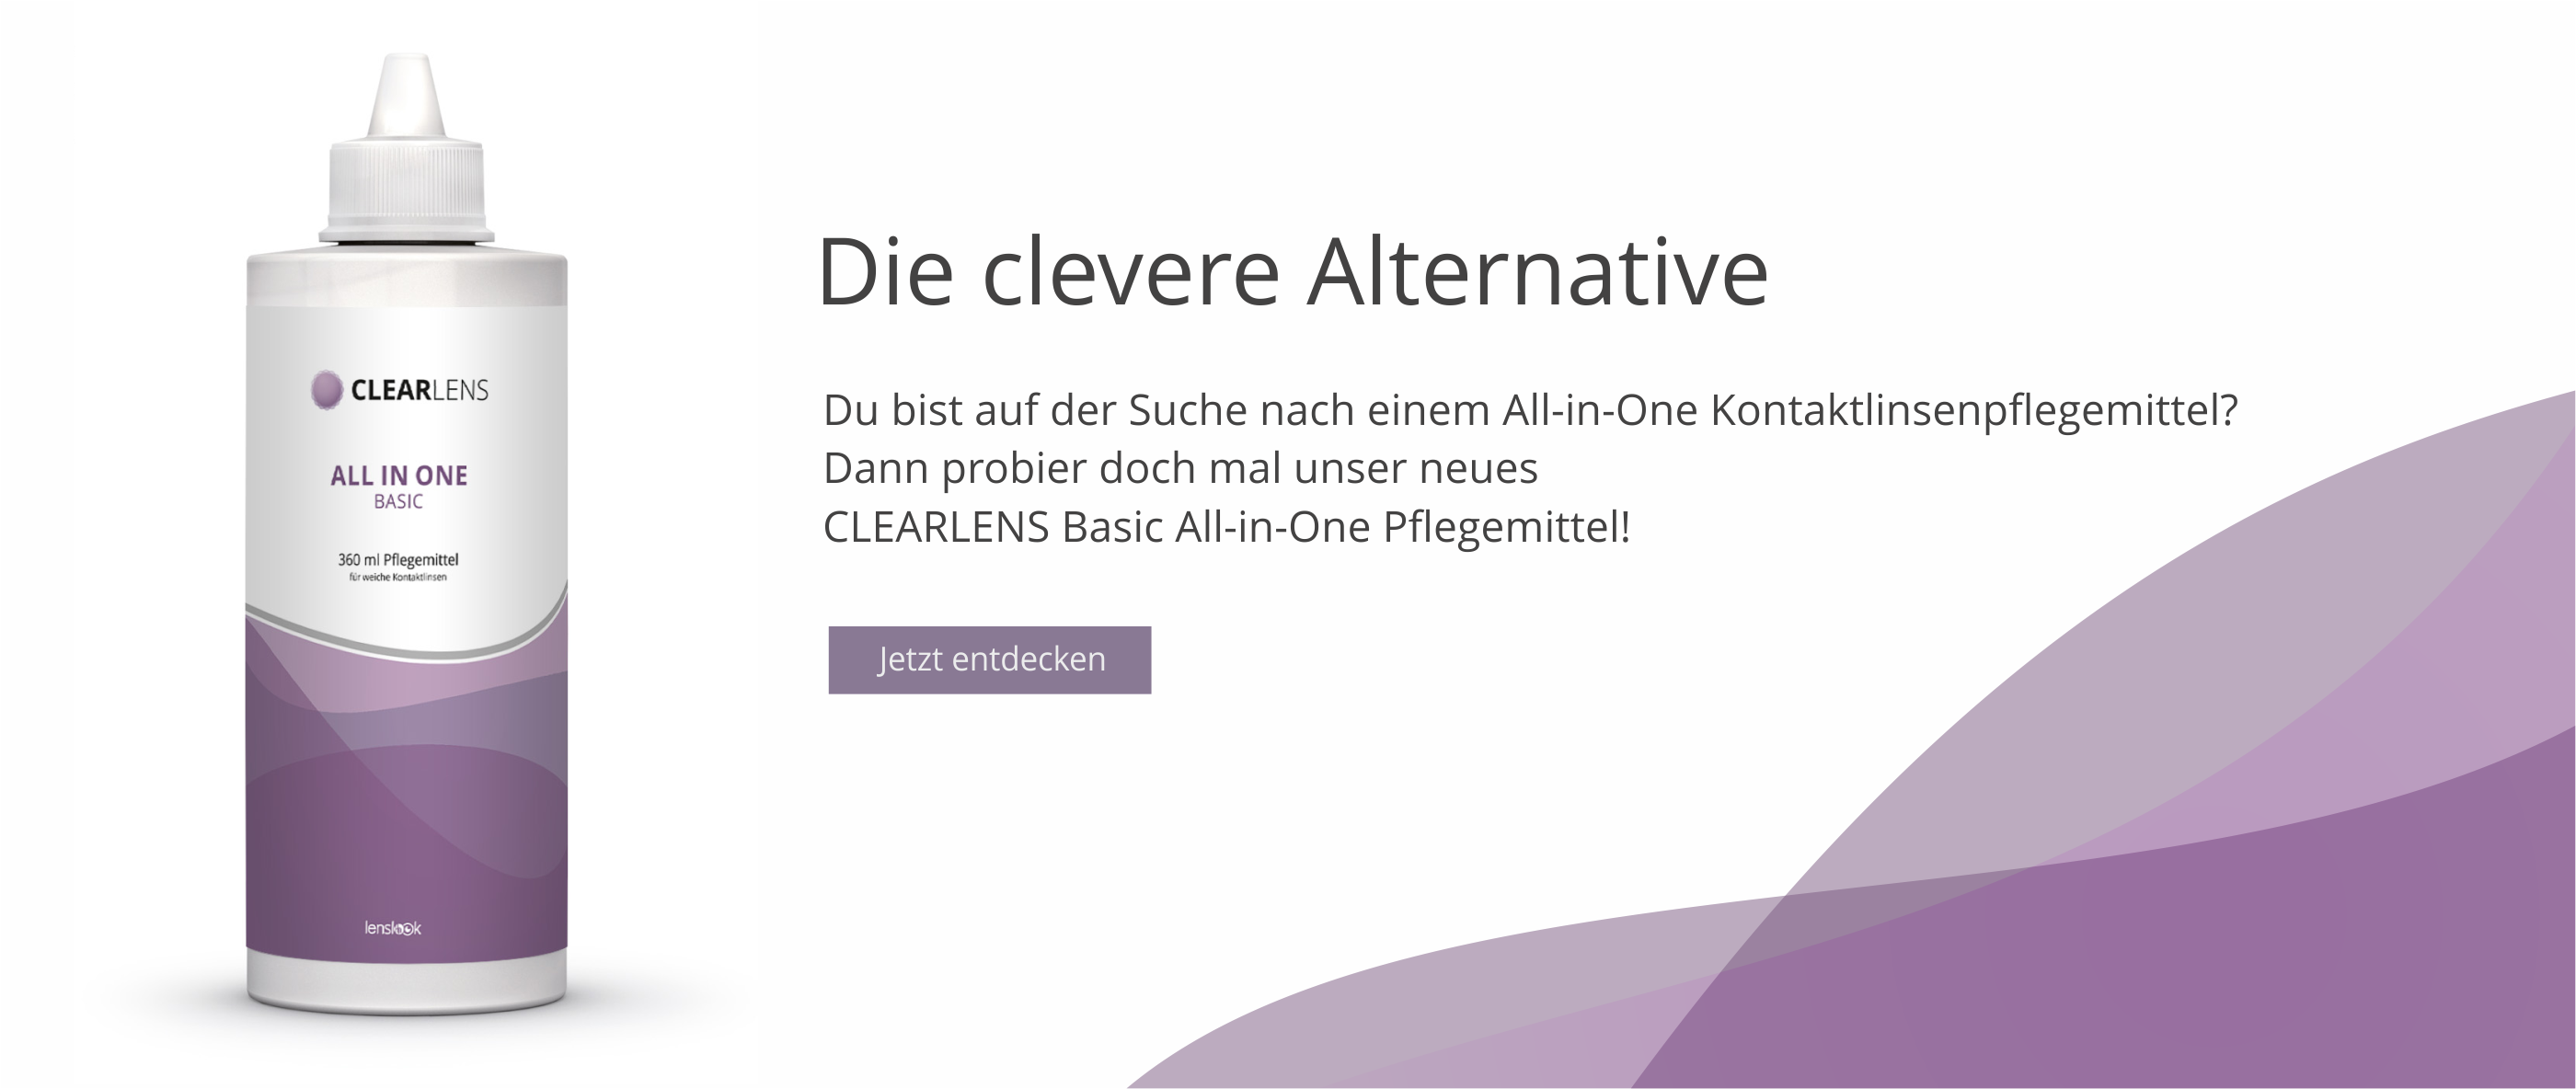 ClearLens_Alternative_Basic_360ml